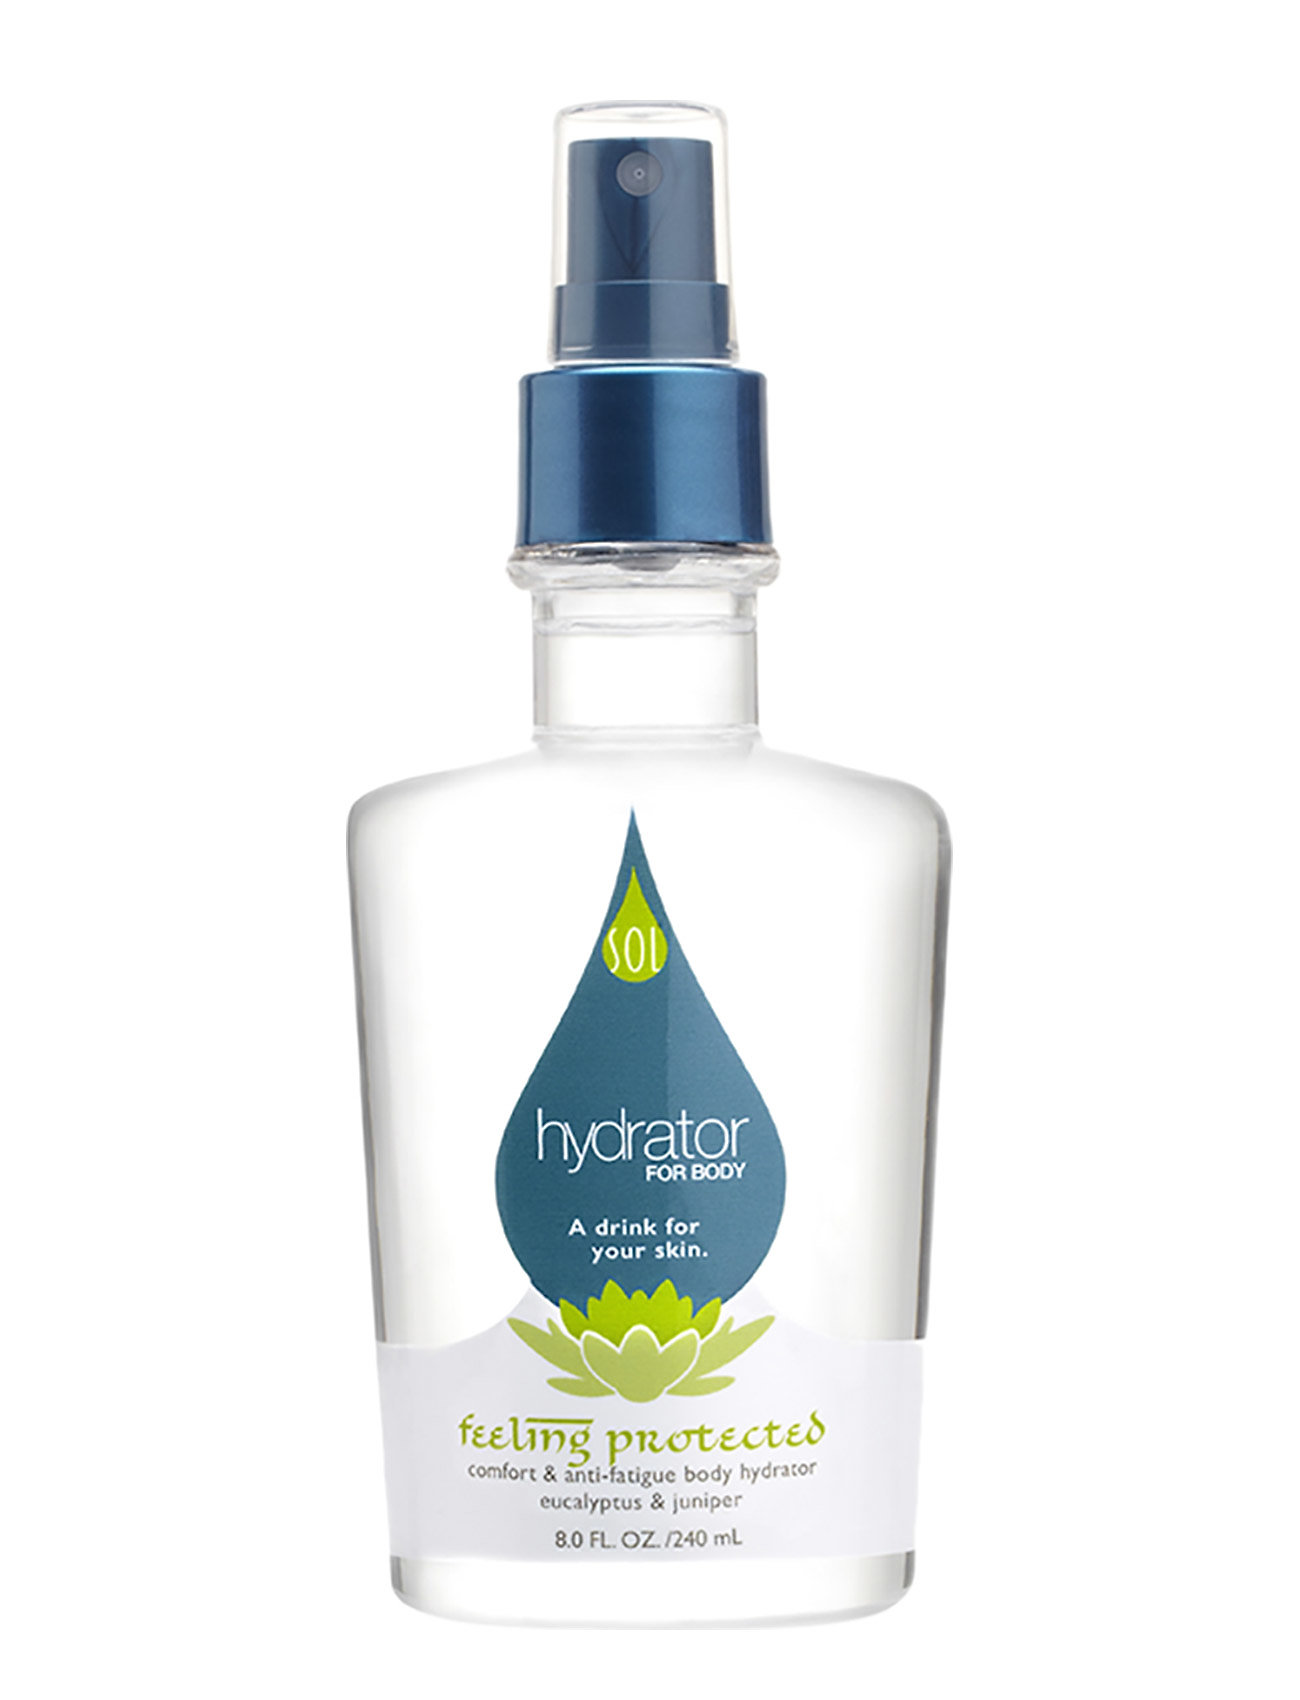 LING New York FeeLING Protected Body Hydrator - comfort & anti-fatigue - CLEAR